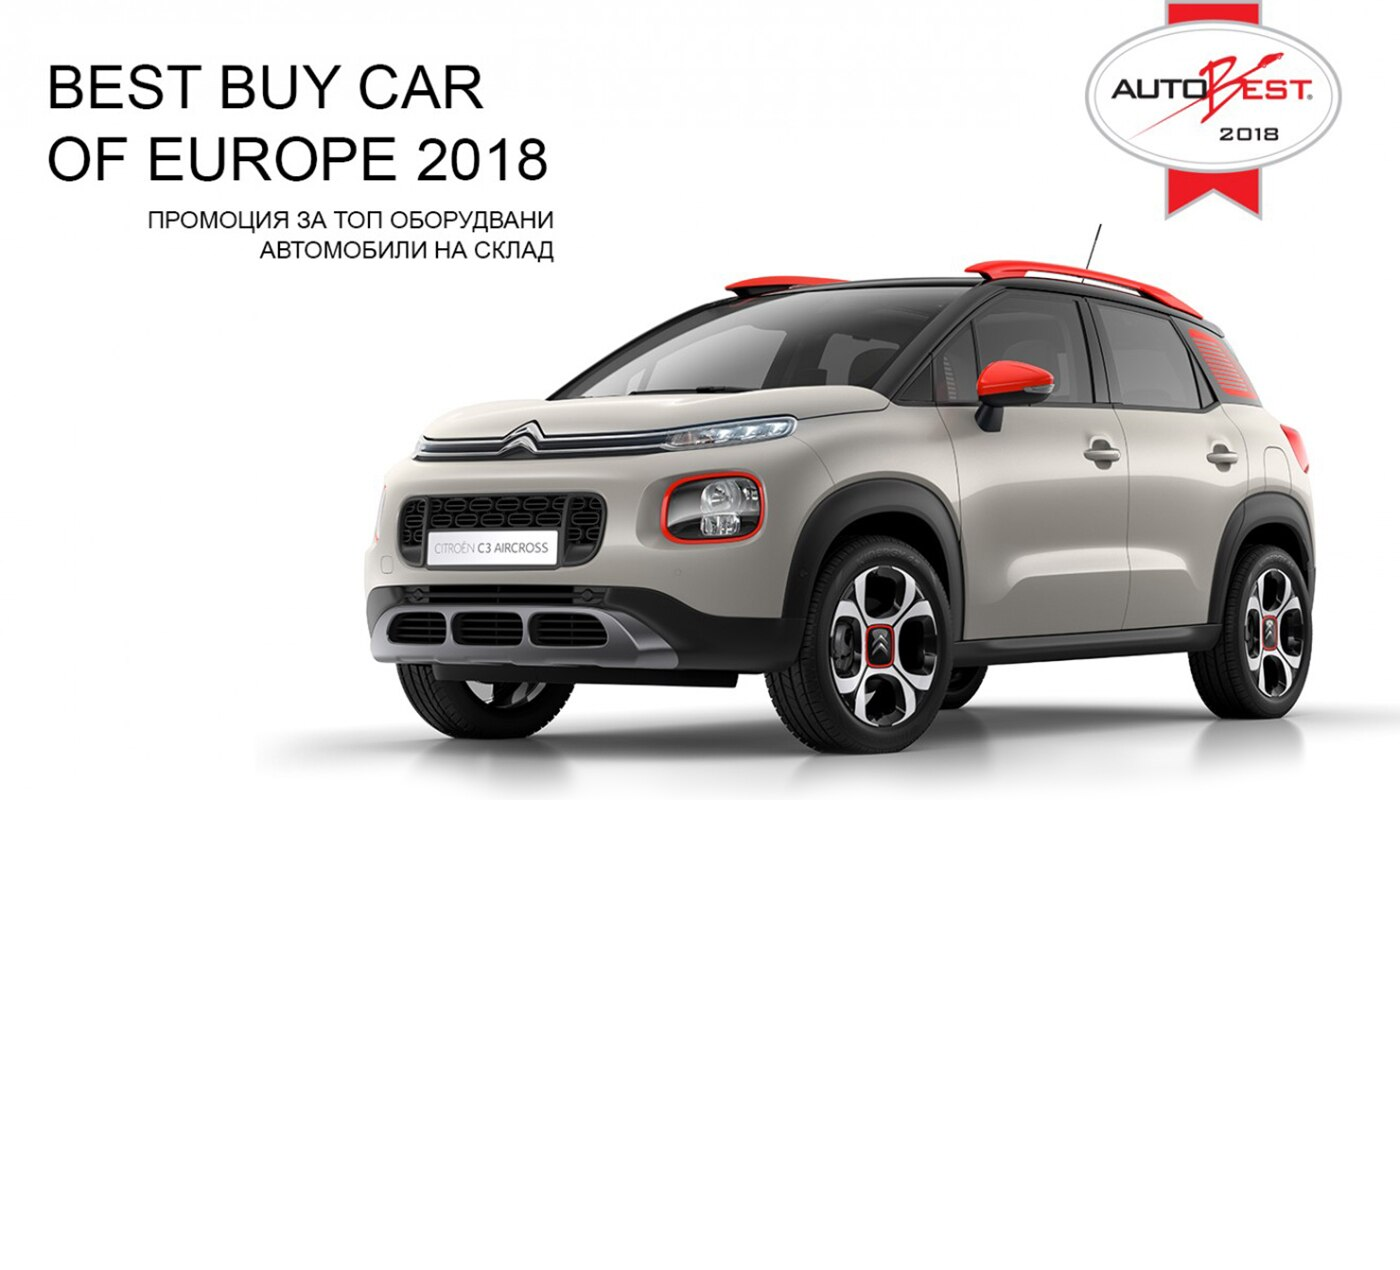 Citroen C3 Aircross 1 2 Puretech 130 Flair 5dr Hatchback